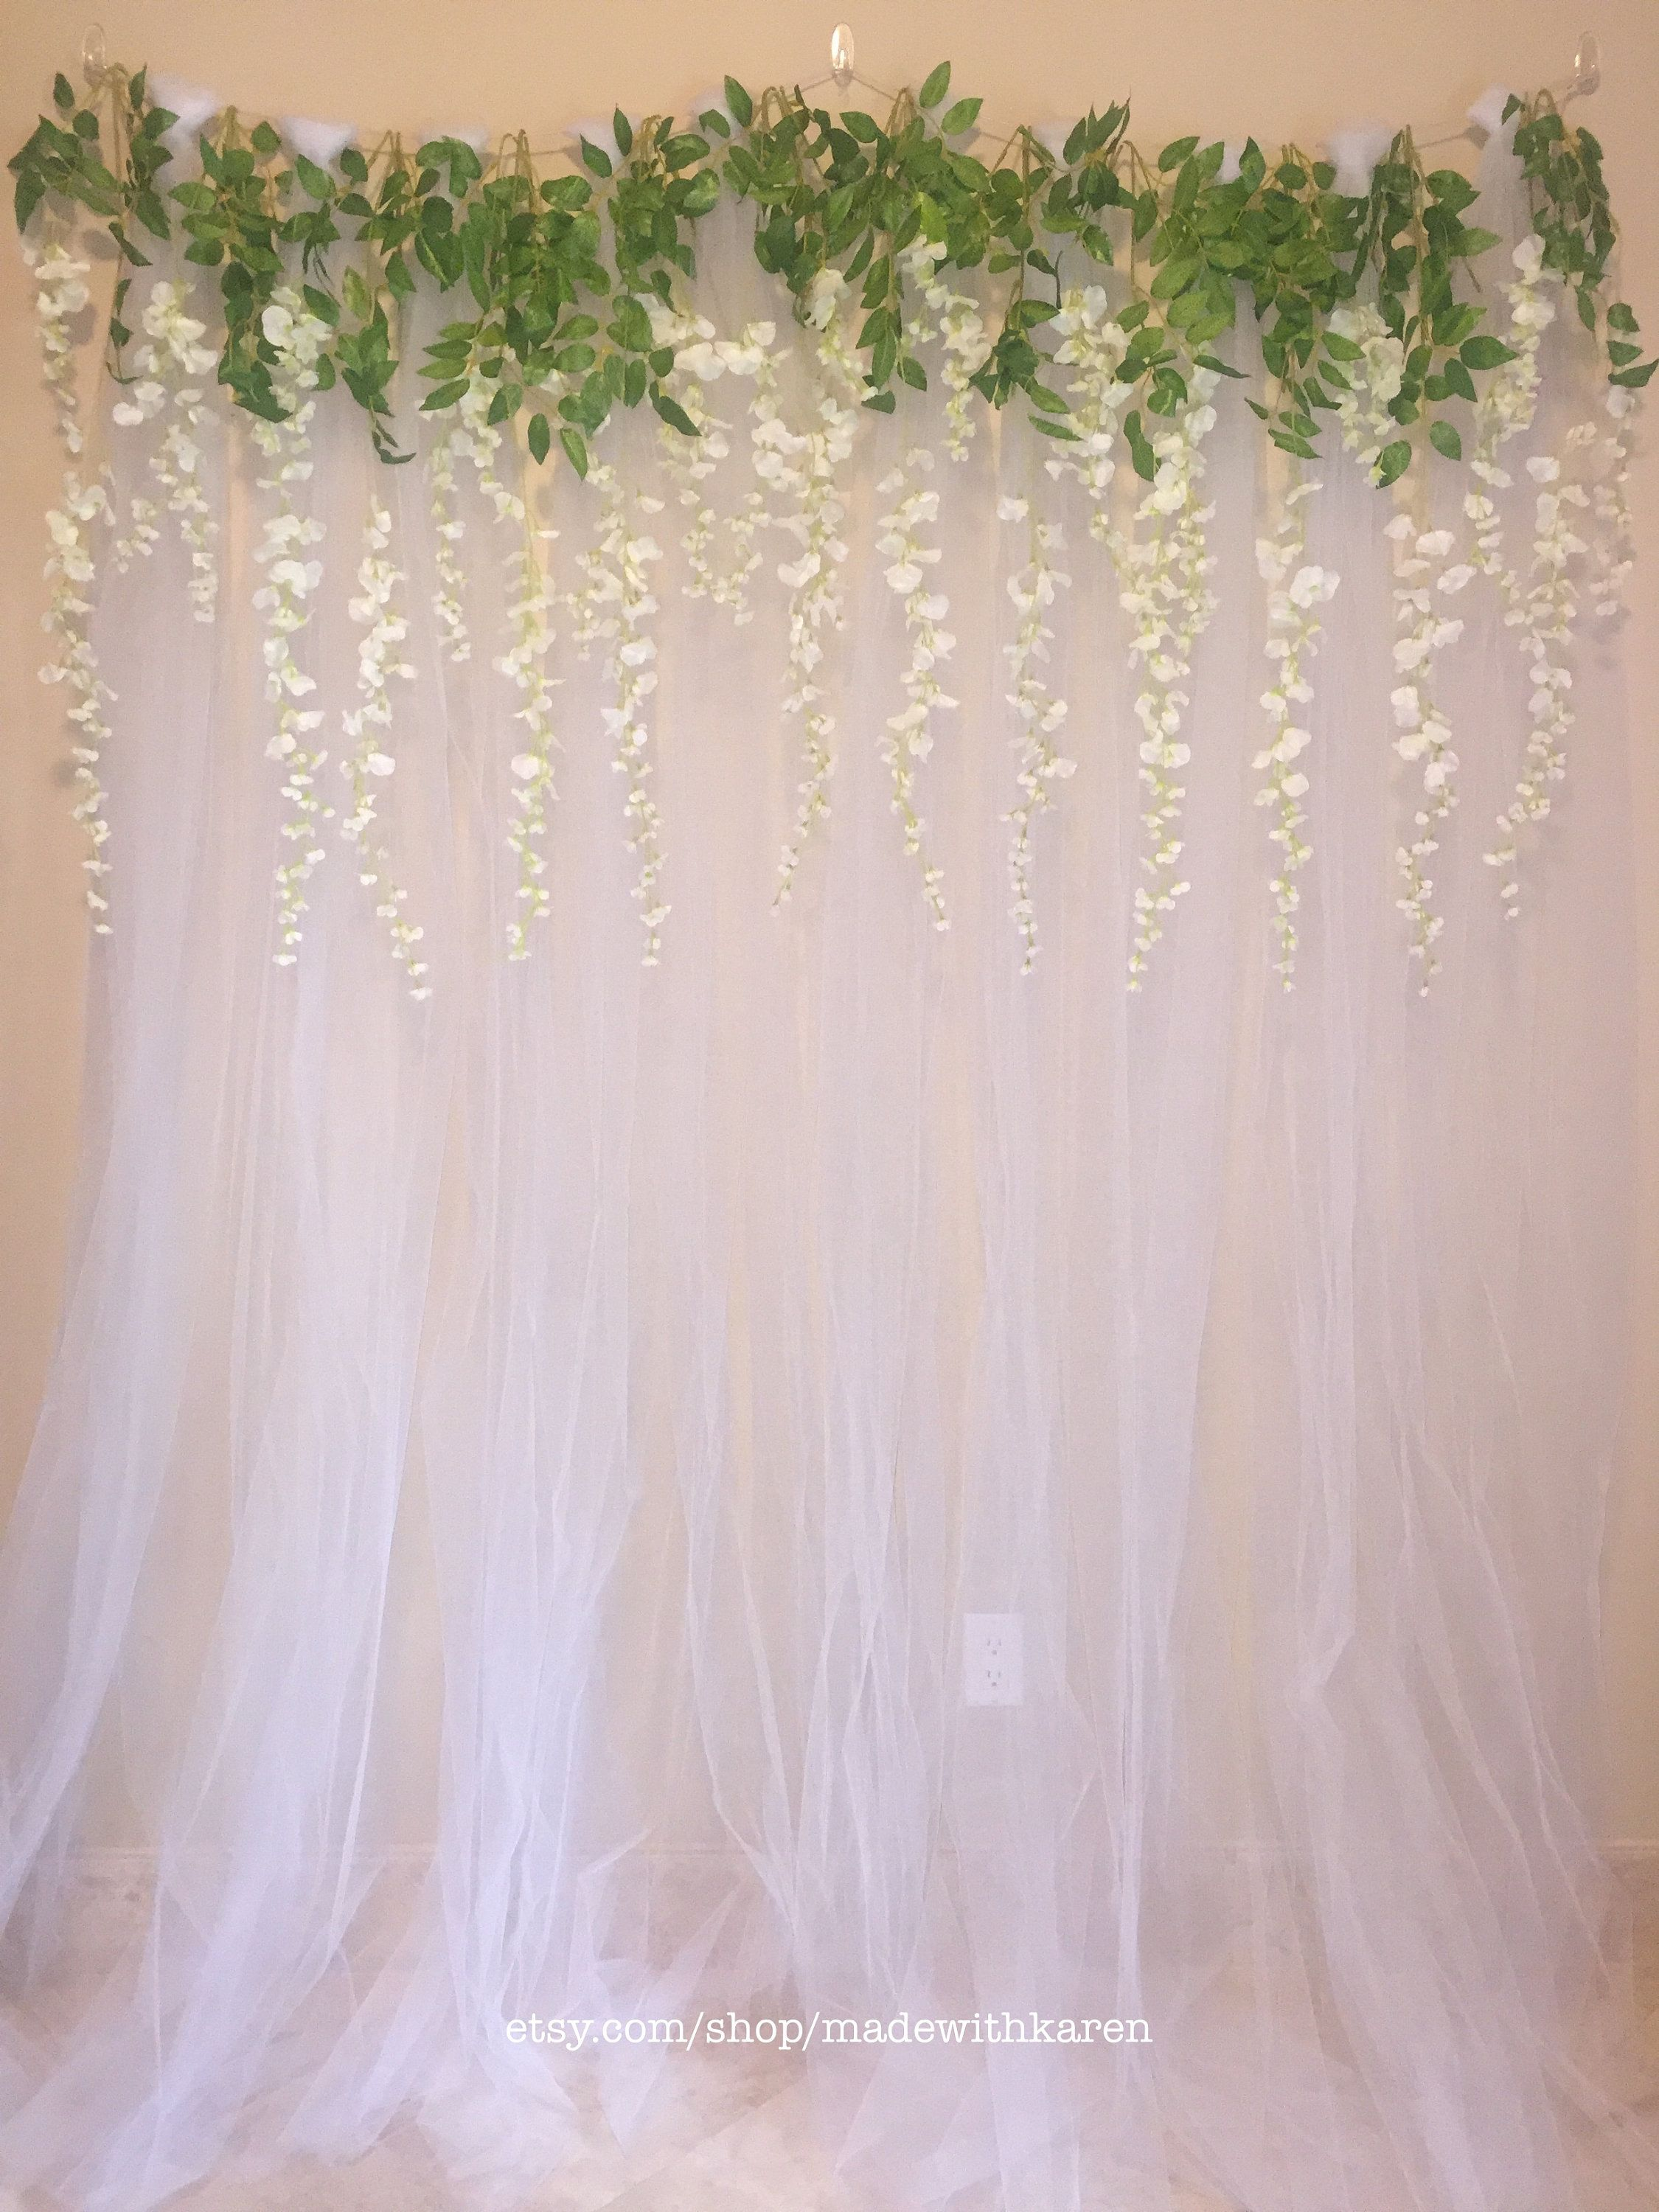 Tulle Backdrop Curtain Photo Booth With Hanging Wisteria Etsy